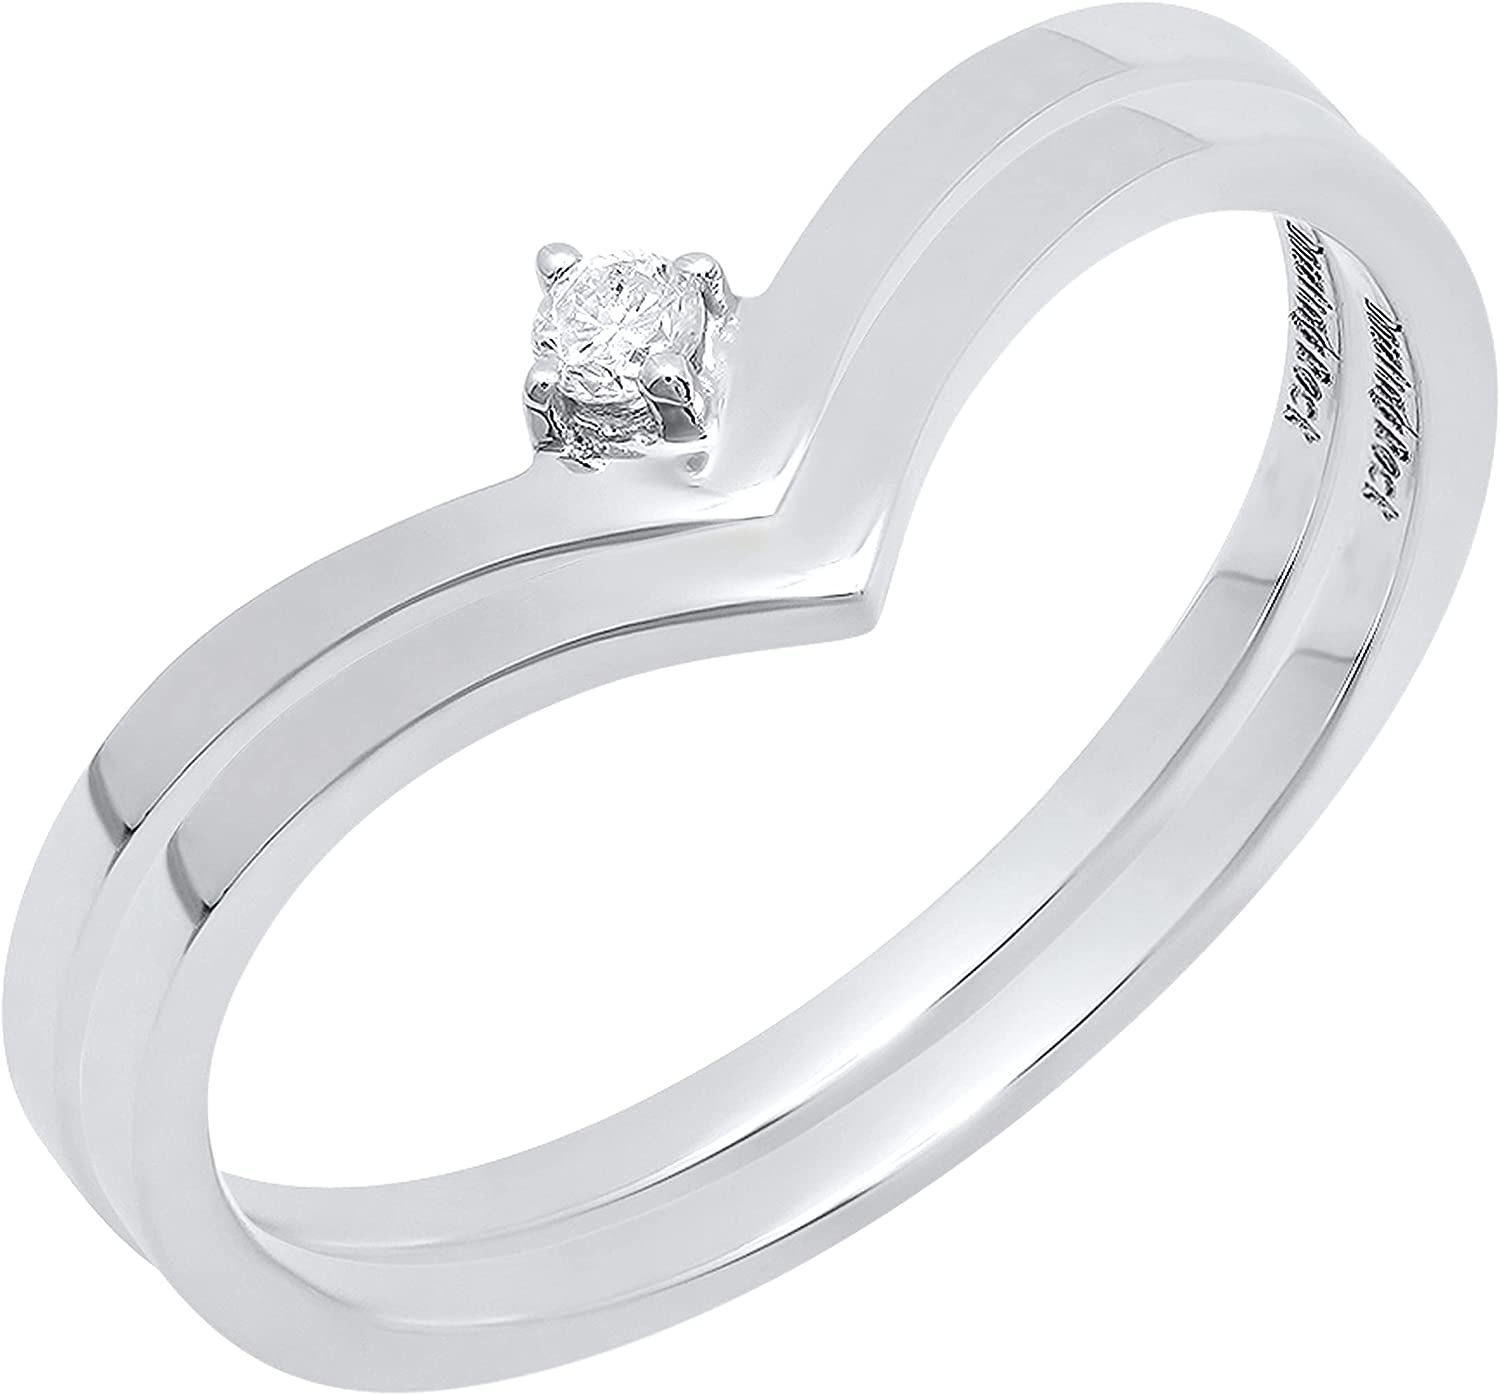 Dazzlingrock Collection 0.05 Carat (ctw) Round White Diamond Ladies Classic Solitaire Chevron V Shape Engagement Ring with Perfectly Matching Wedding Band | Available in 10K/14K/18K Gold